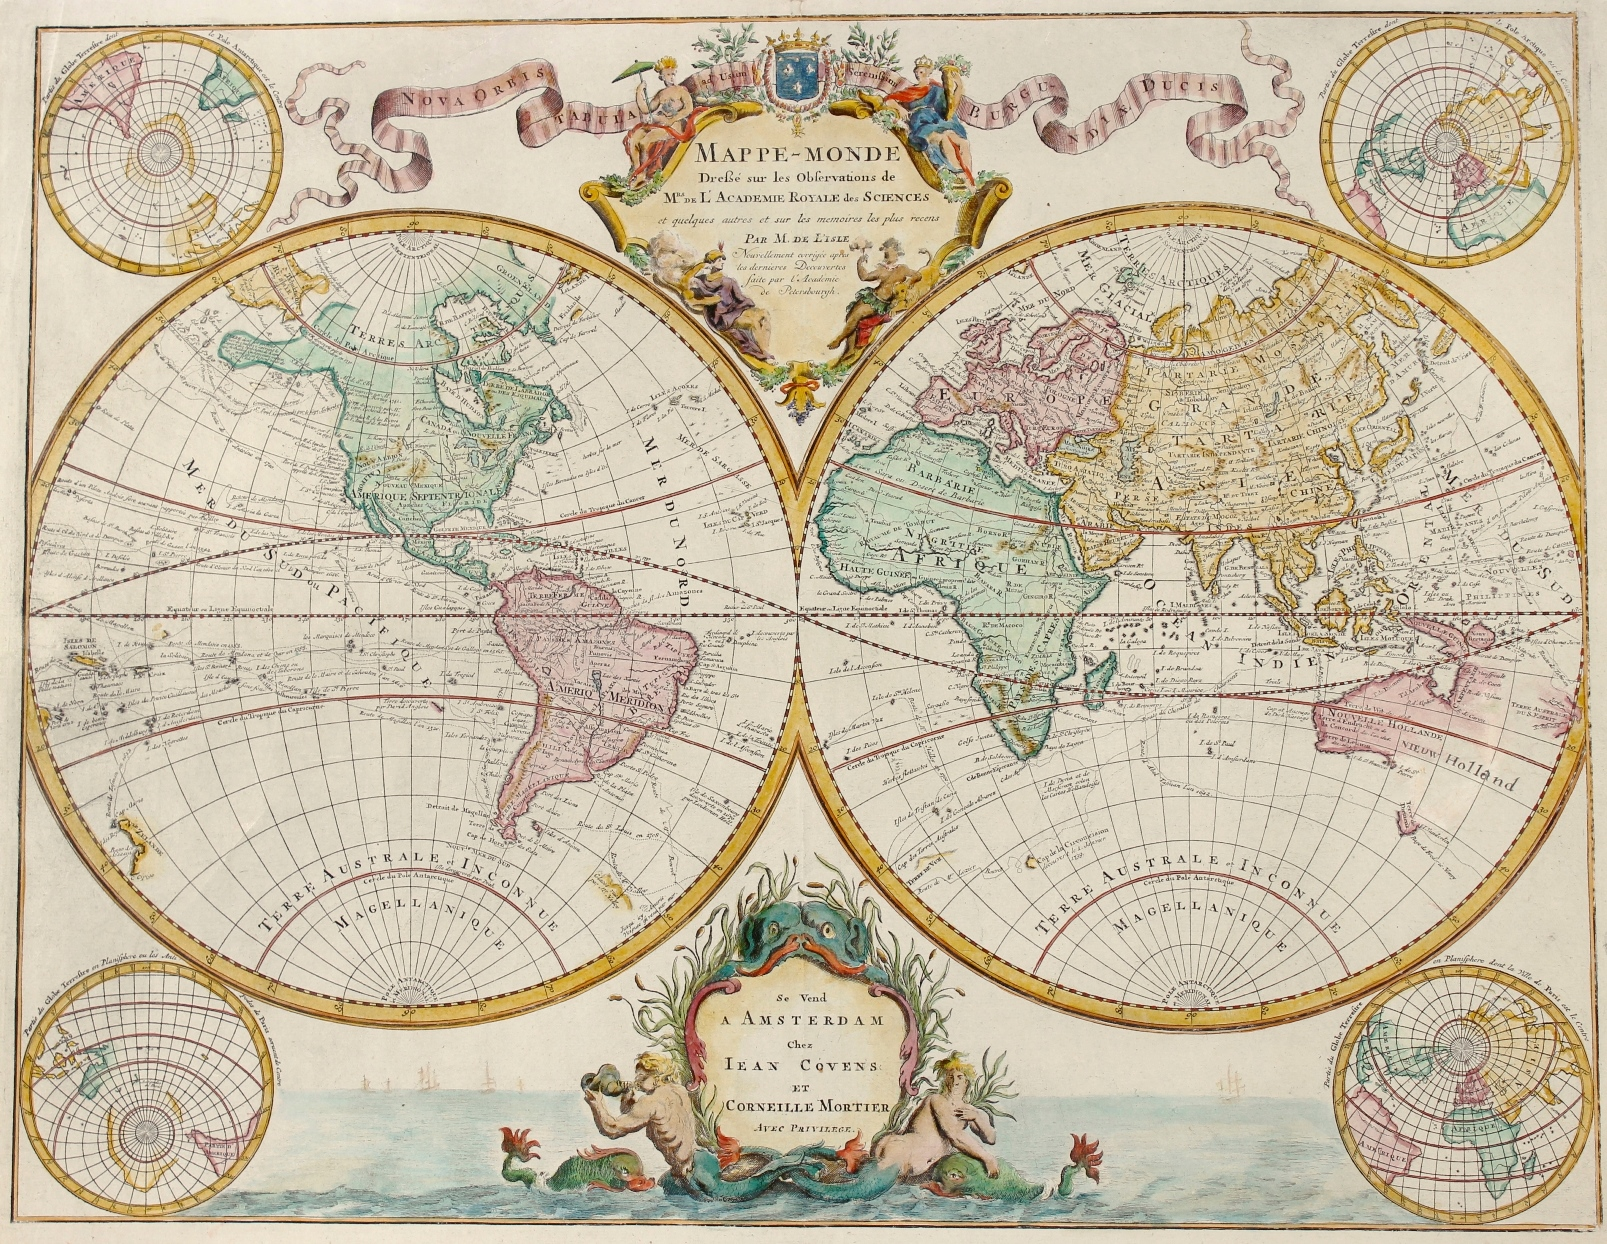 Rare Antique Old World Map 18th Century Engraving Rare Antique Old